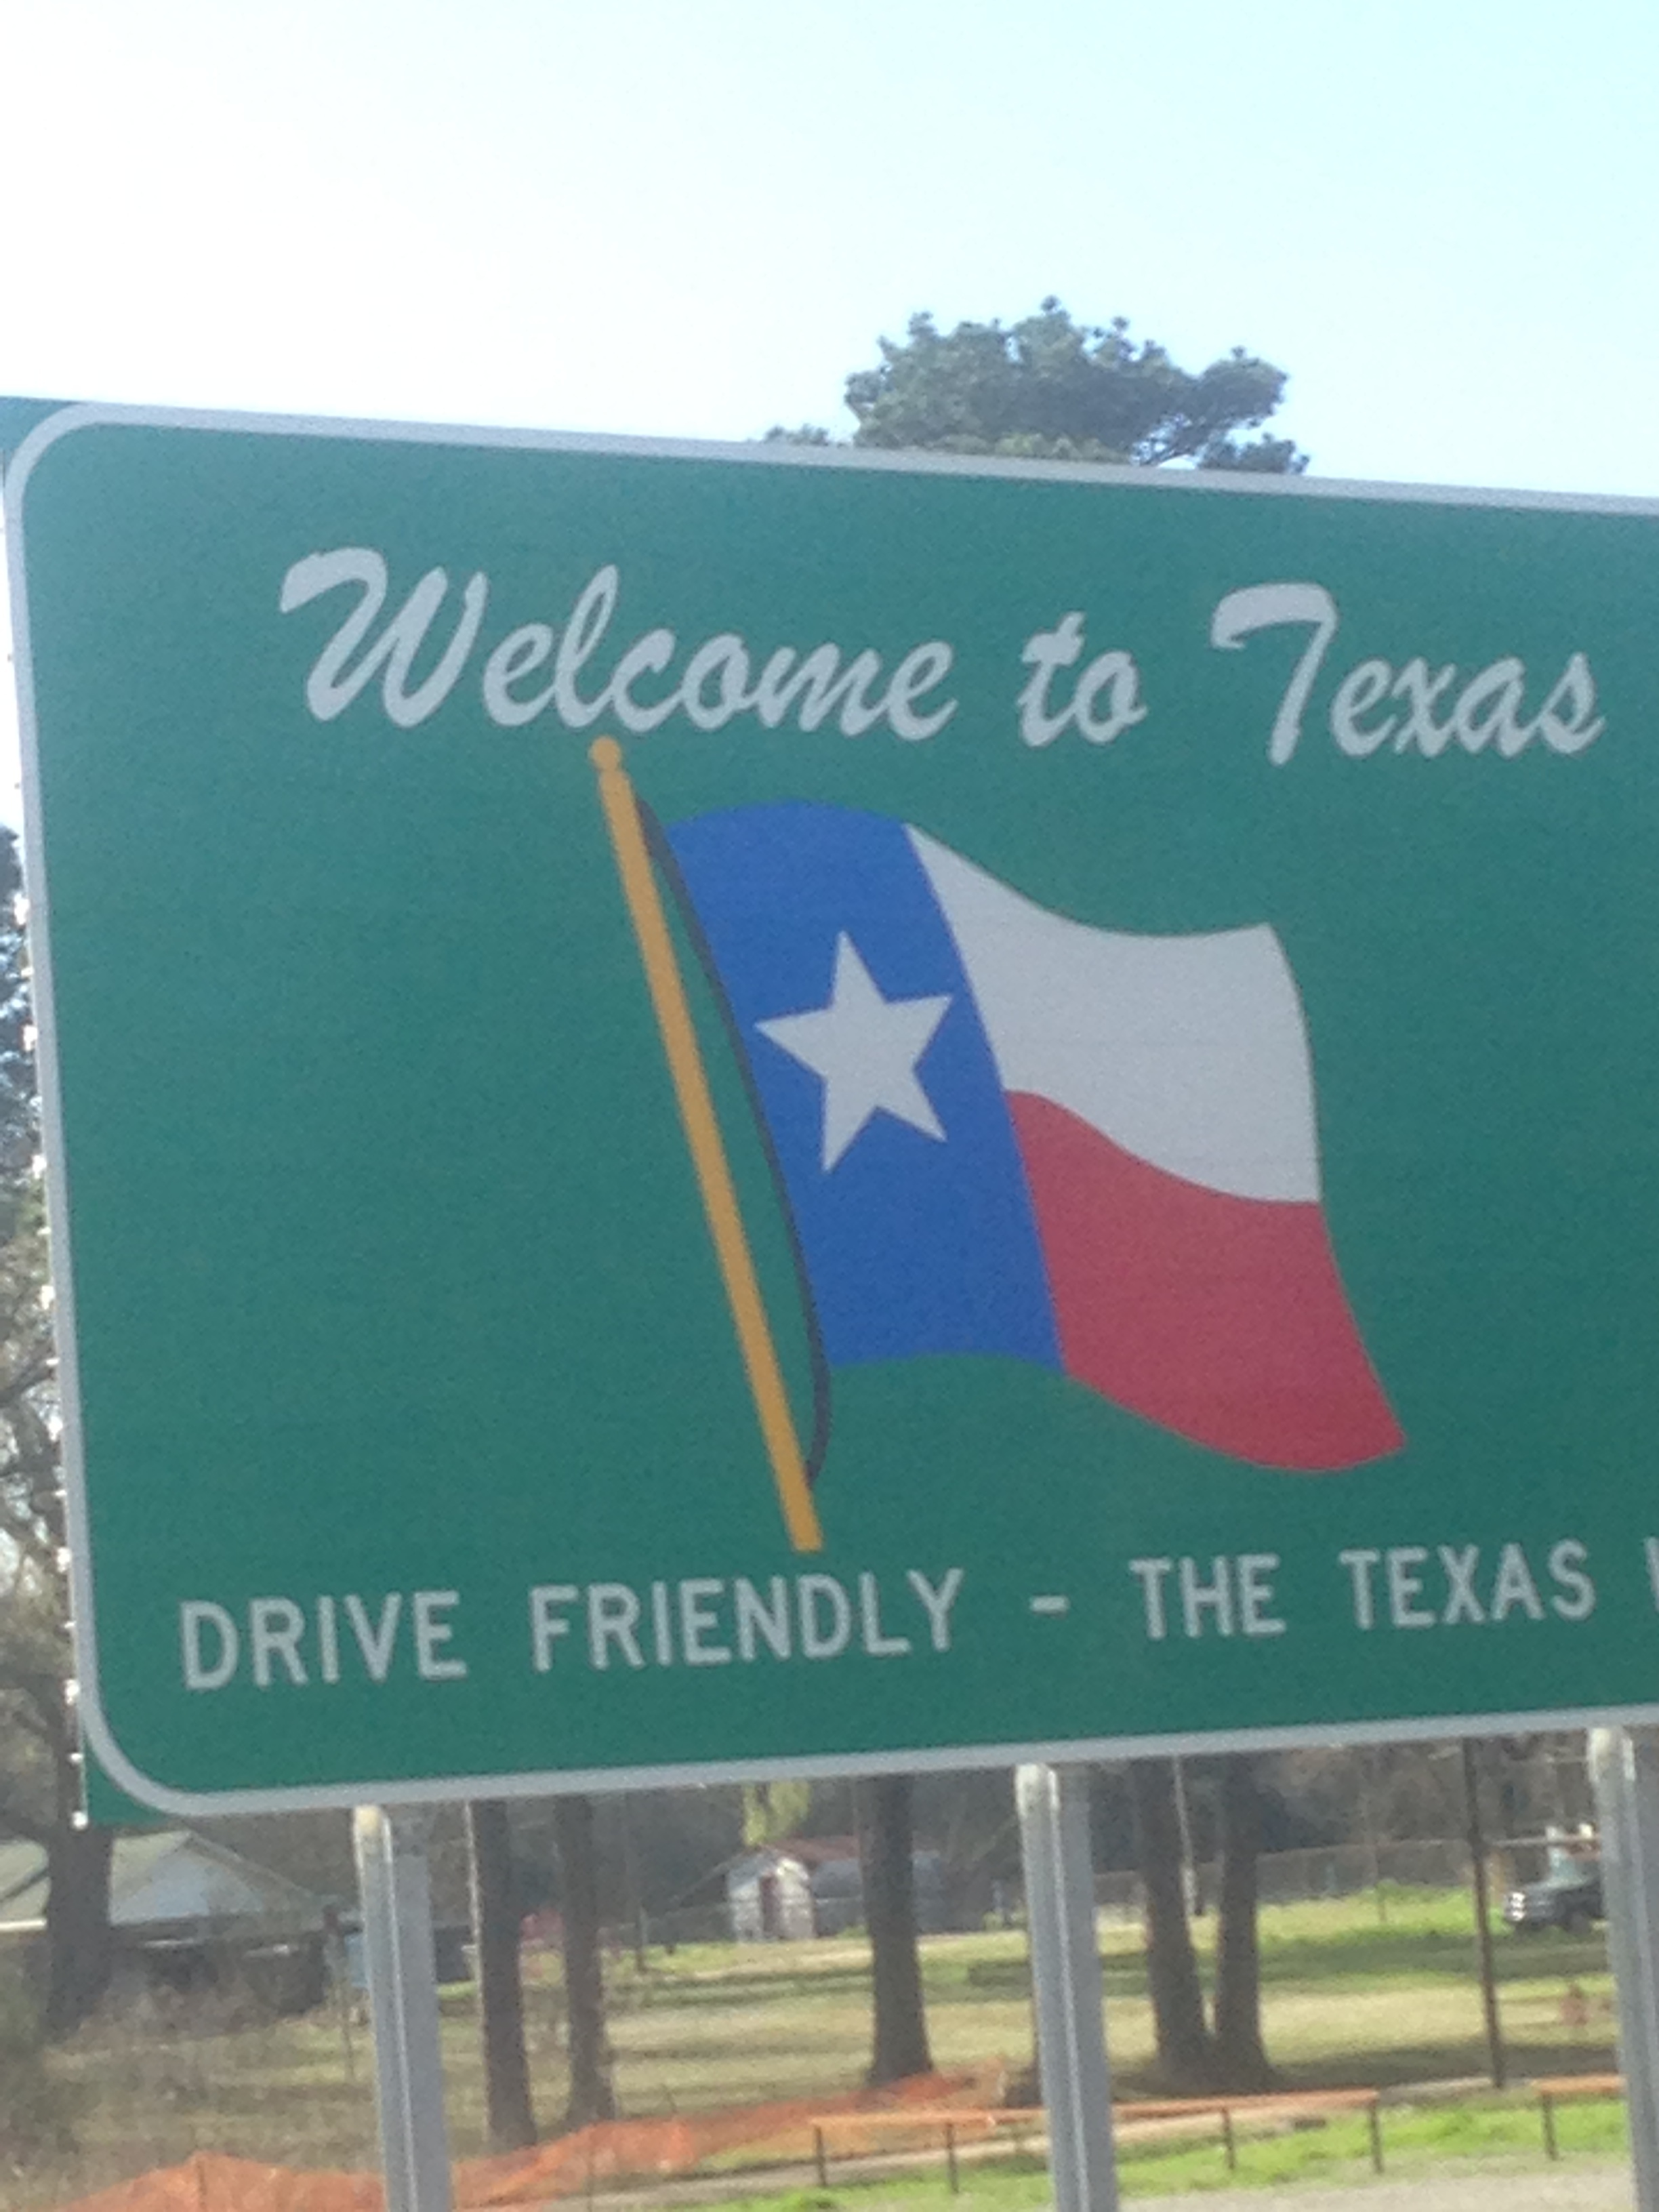 Drive Friendly. No angry drivers. This is Texas. Get it together.